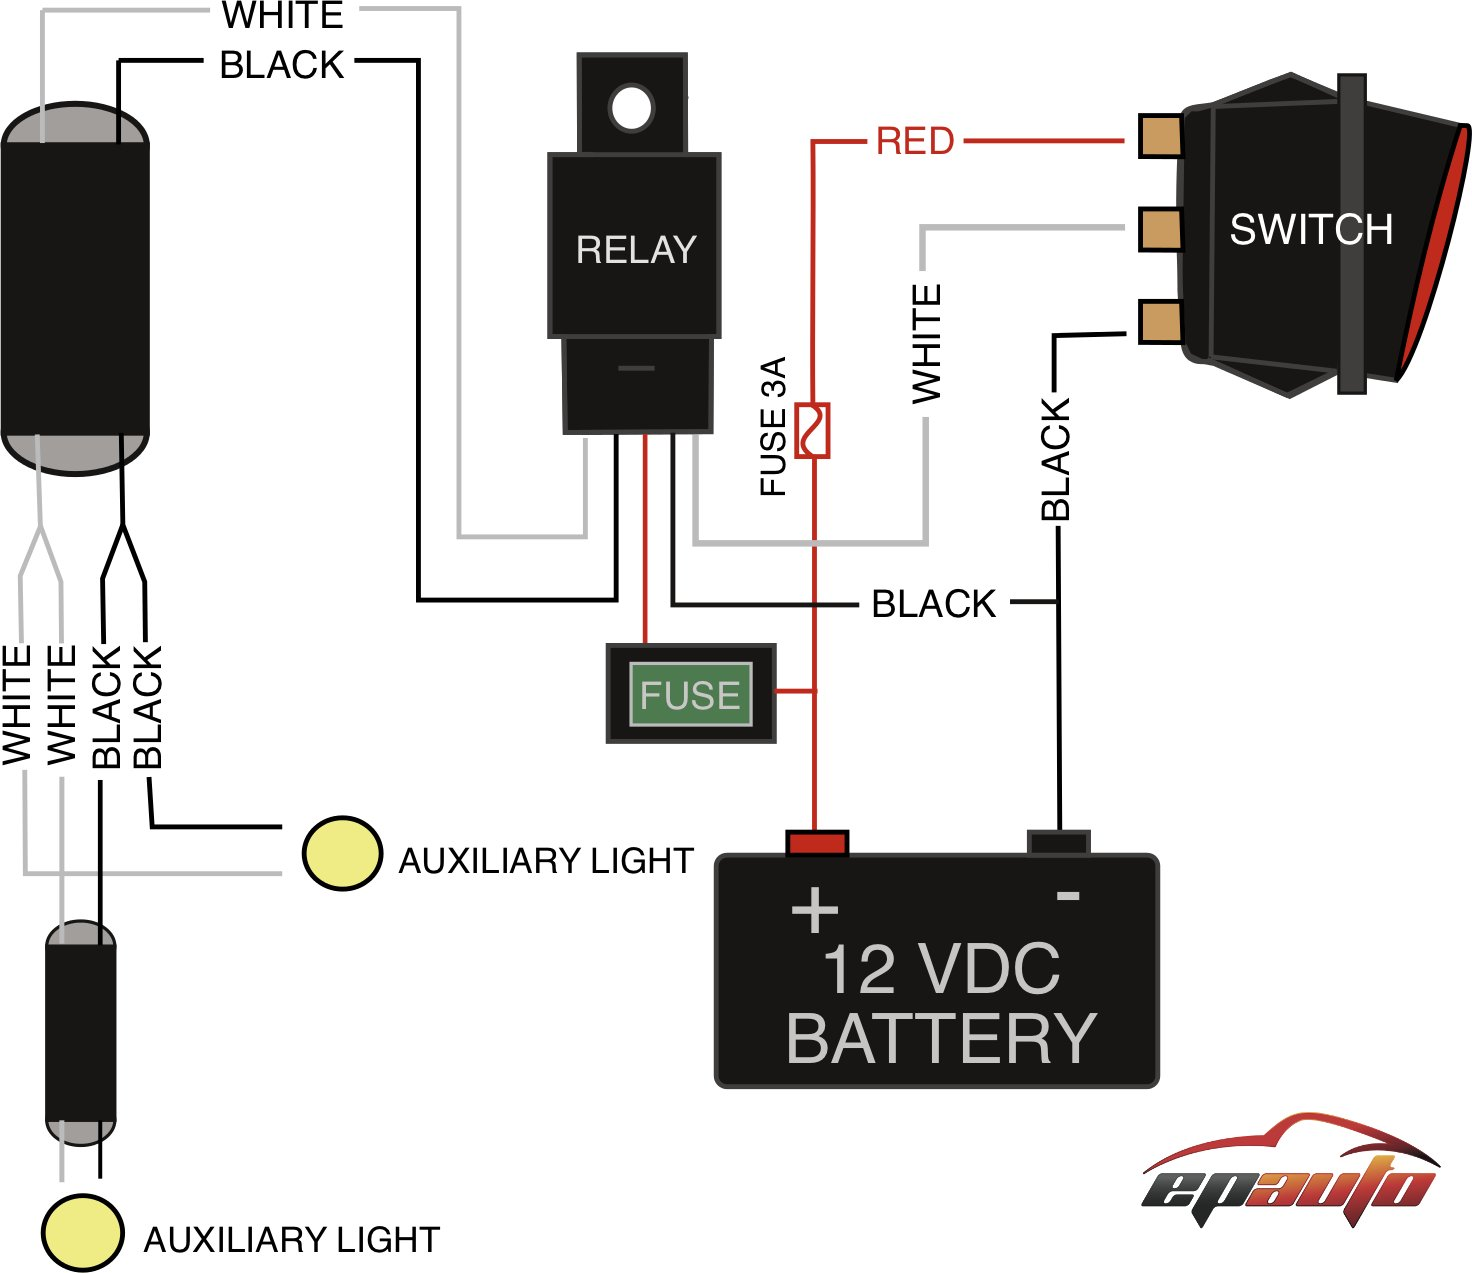 Wiring Harness For Led Light Bars Relay 12v - DATA WIRING DIAGRAM •